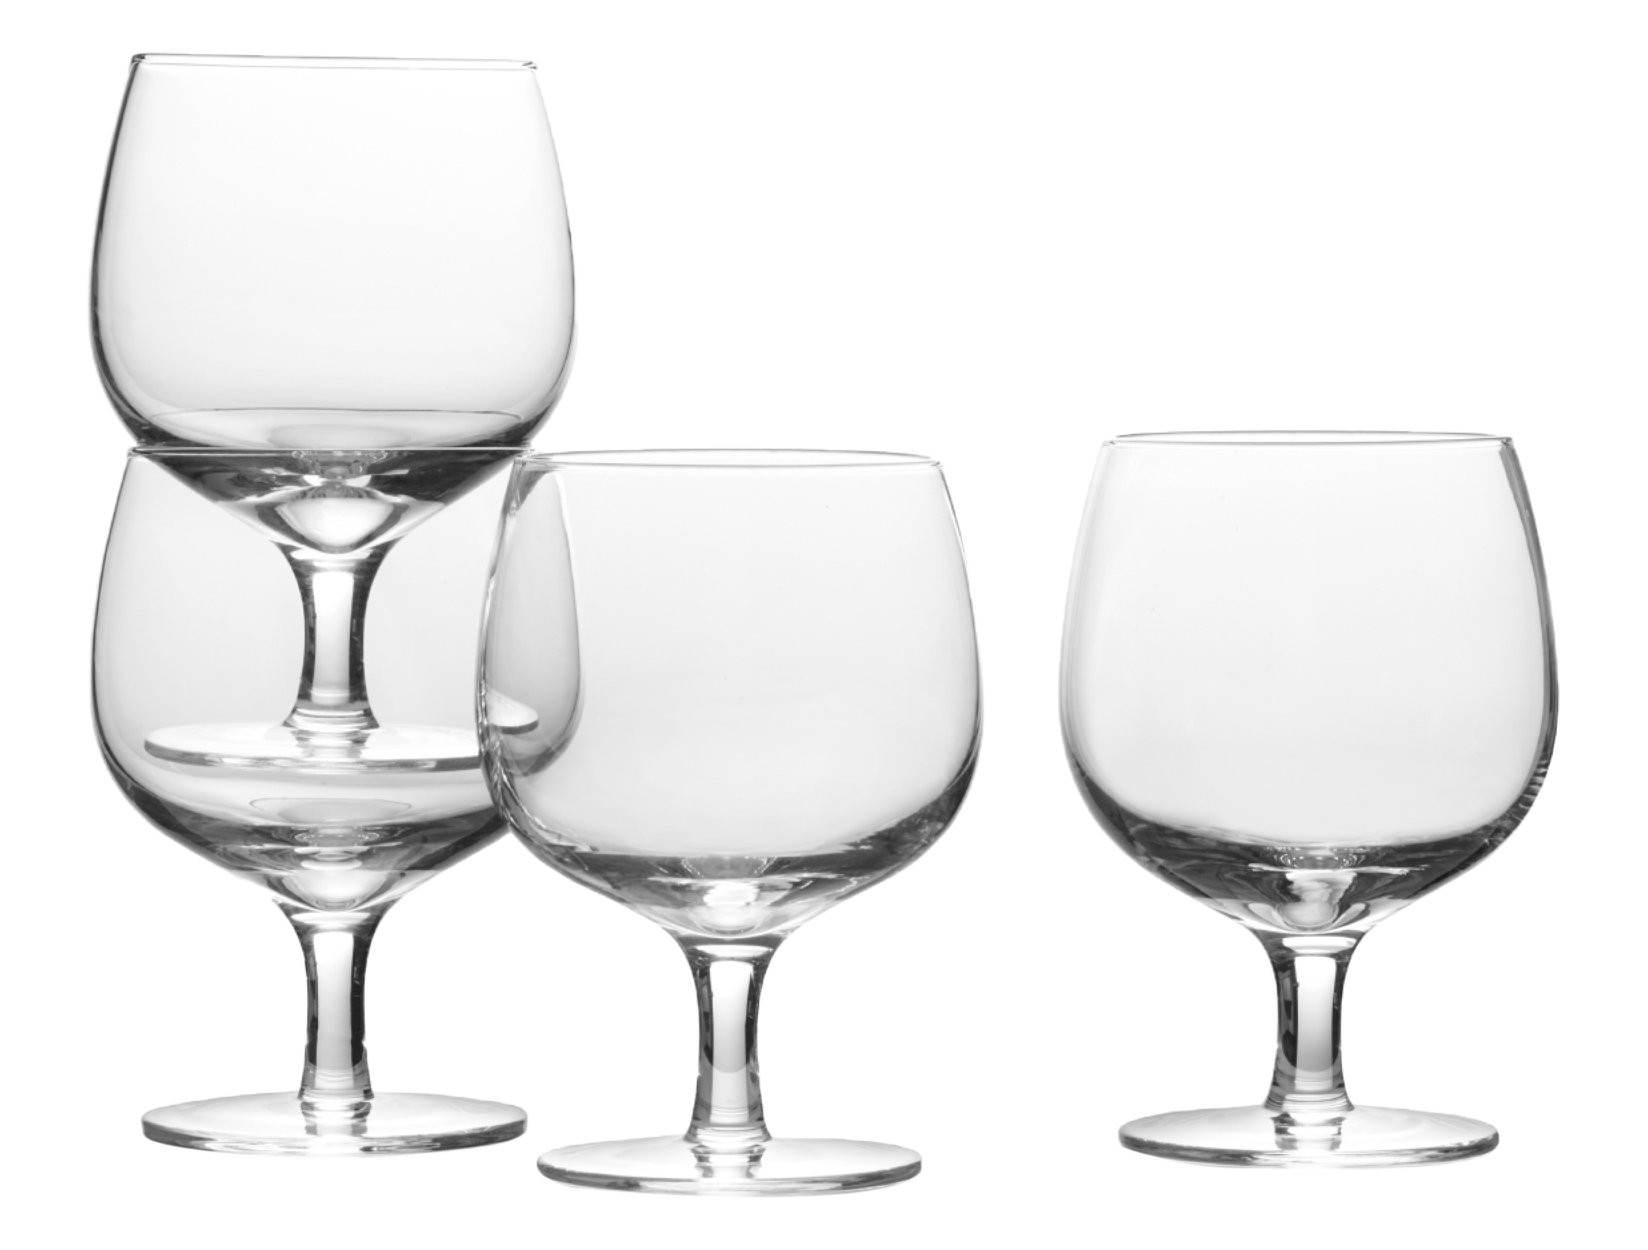 Mikasa Drink4 Stacking Wine Glass, 12.5-Ounce, Set of 4 by Mikasa